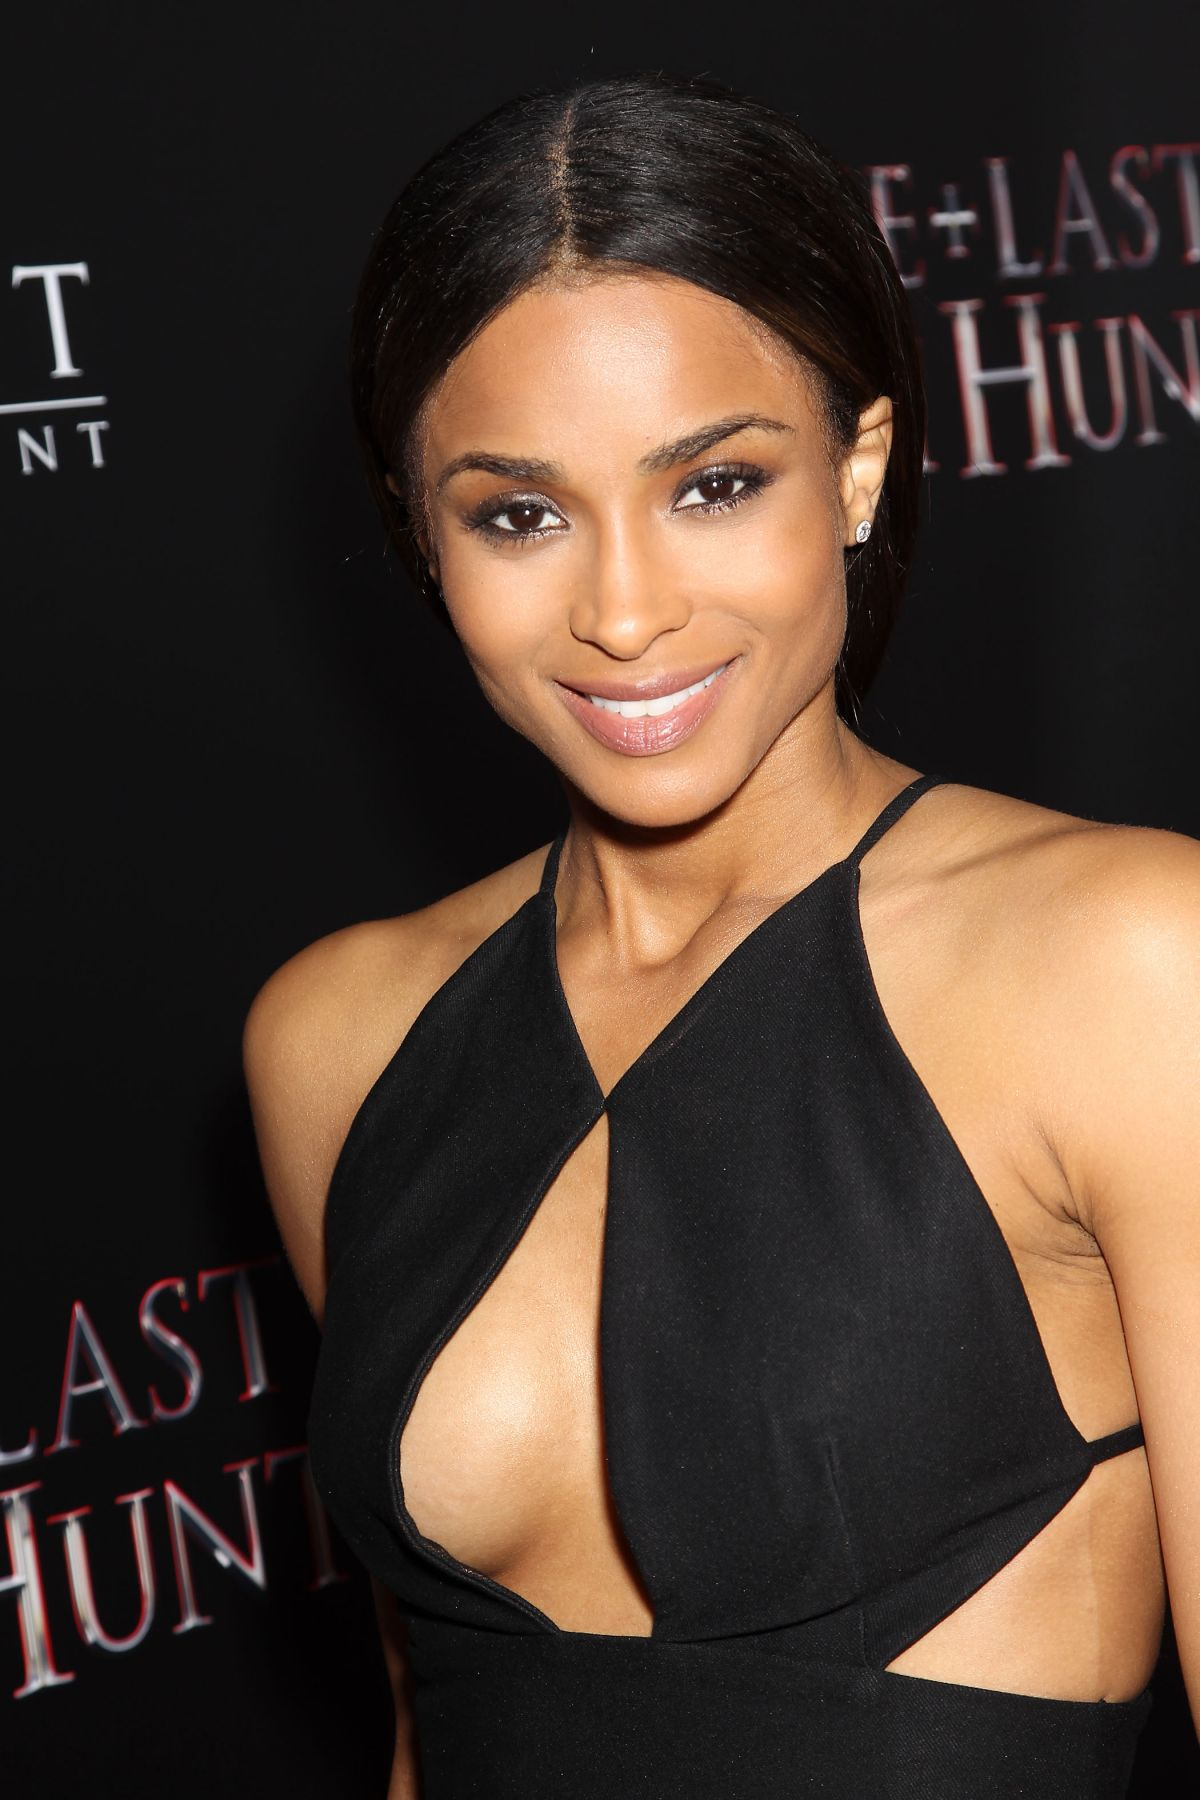 CIARA at The Last Witch Hunter Premiere in New York 10/13/2015